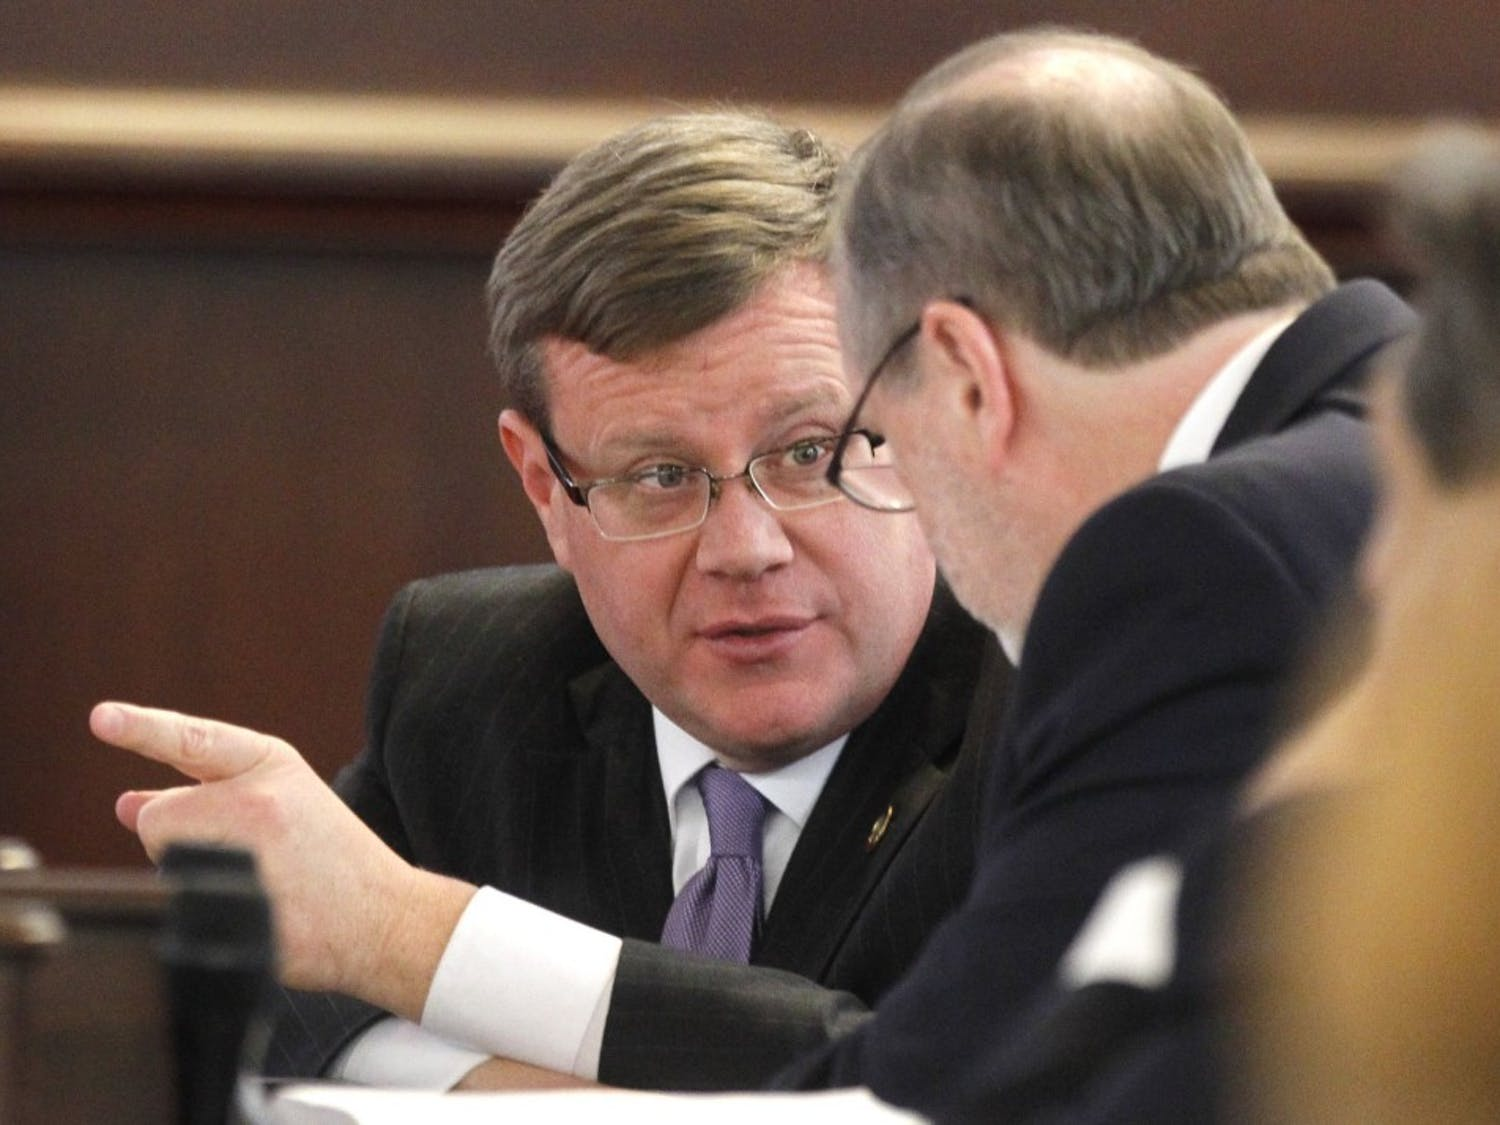 North Carolina Speaker of the House Tim Moore, left, confers with President Pro Tempore Phil Berger in the Senate chambers during a special session of the North Carolina General Assembly on Friday, Dec. 16, 2016 at the Legislative Building in Raleigh, N.C. (Ethan Hyman/Raleigh News & Observer/TNS)